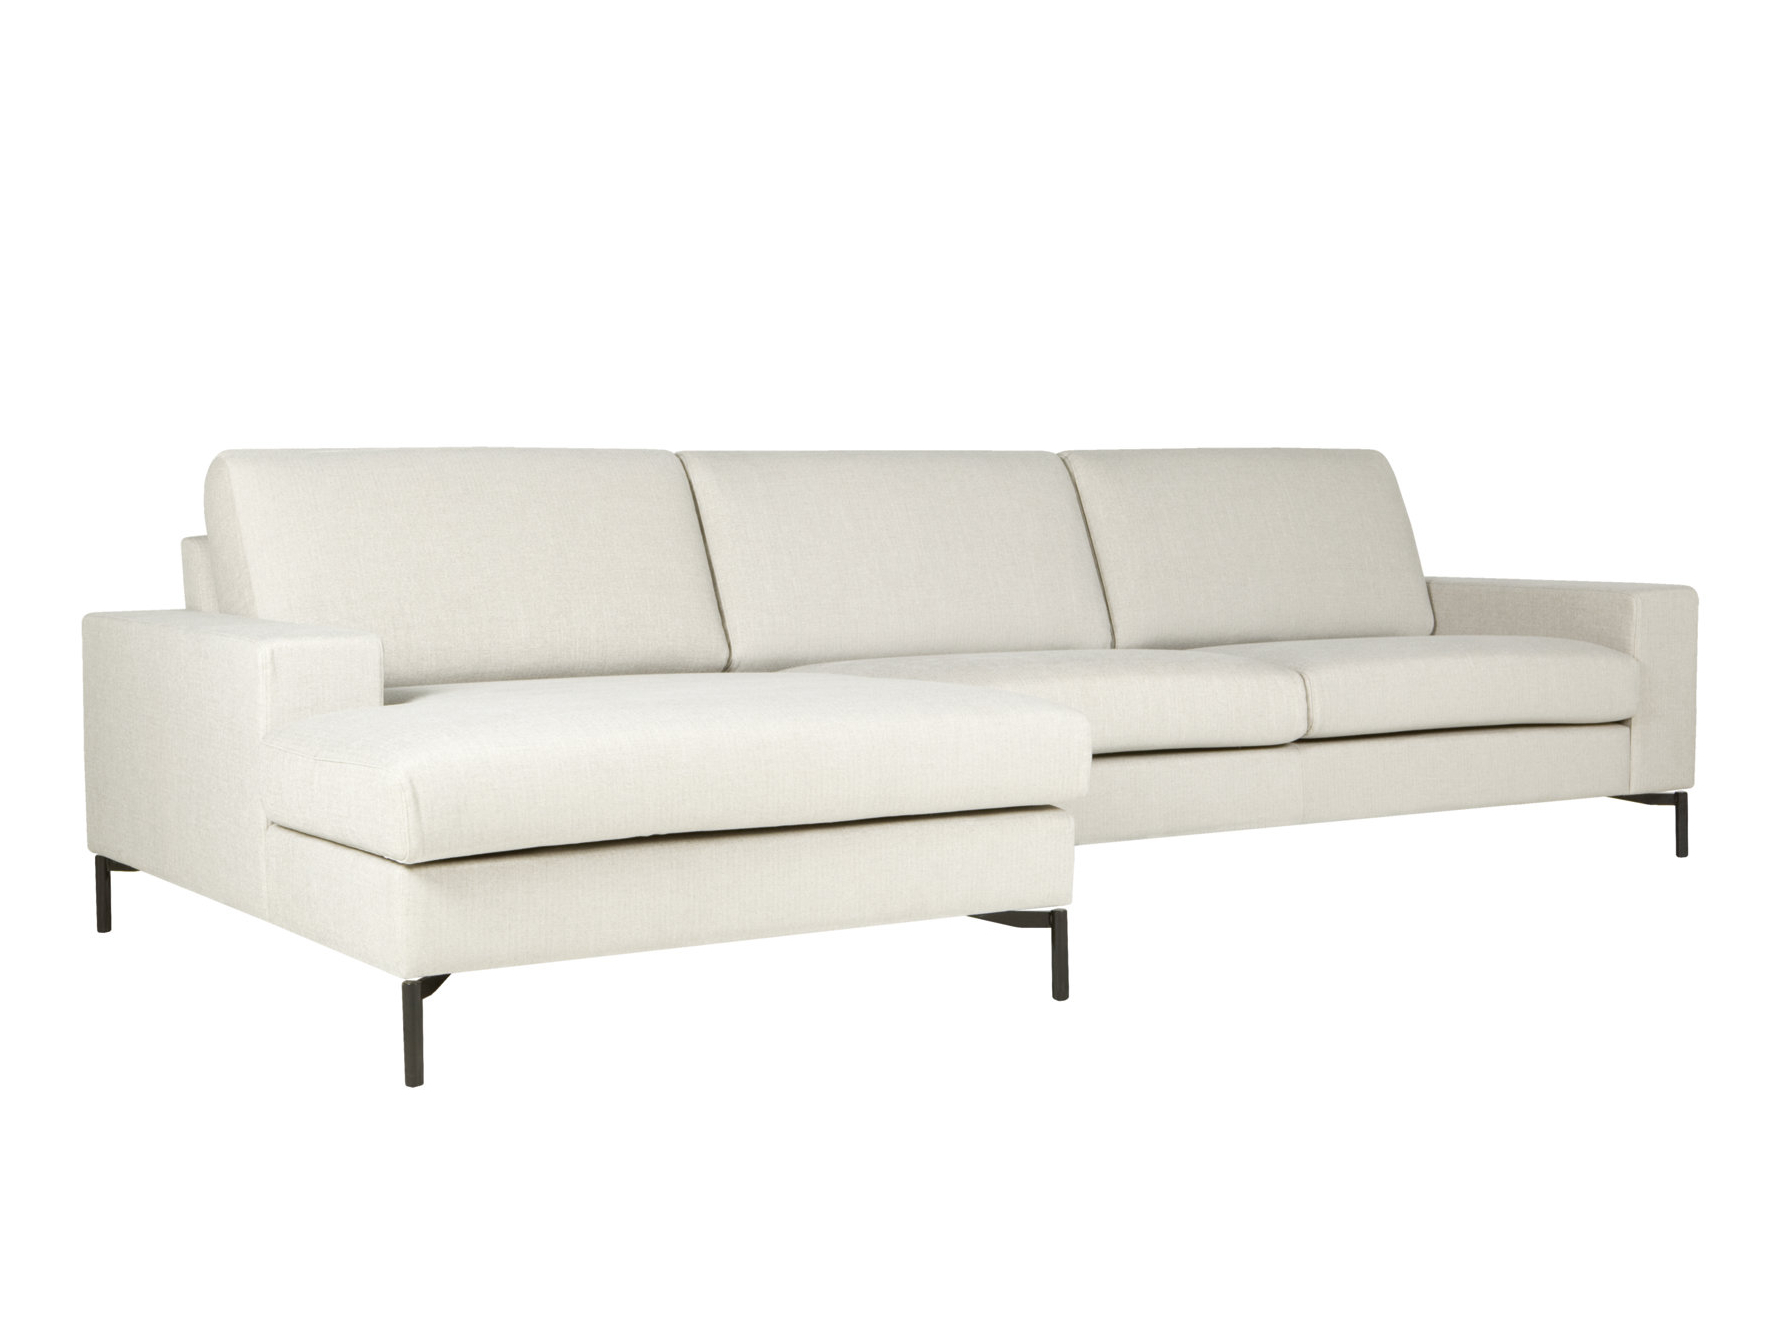 Quattro sofa with chaise longue quattro collection by sits for Sofa 1 plaza chaise longue